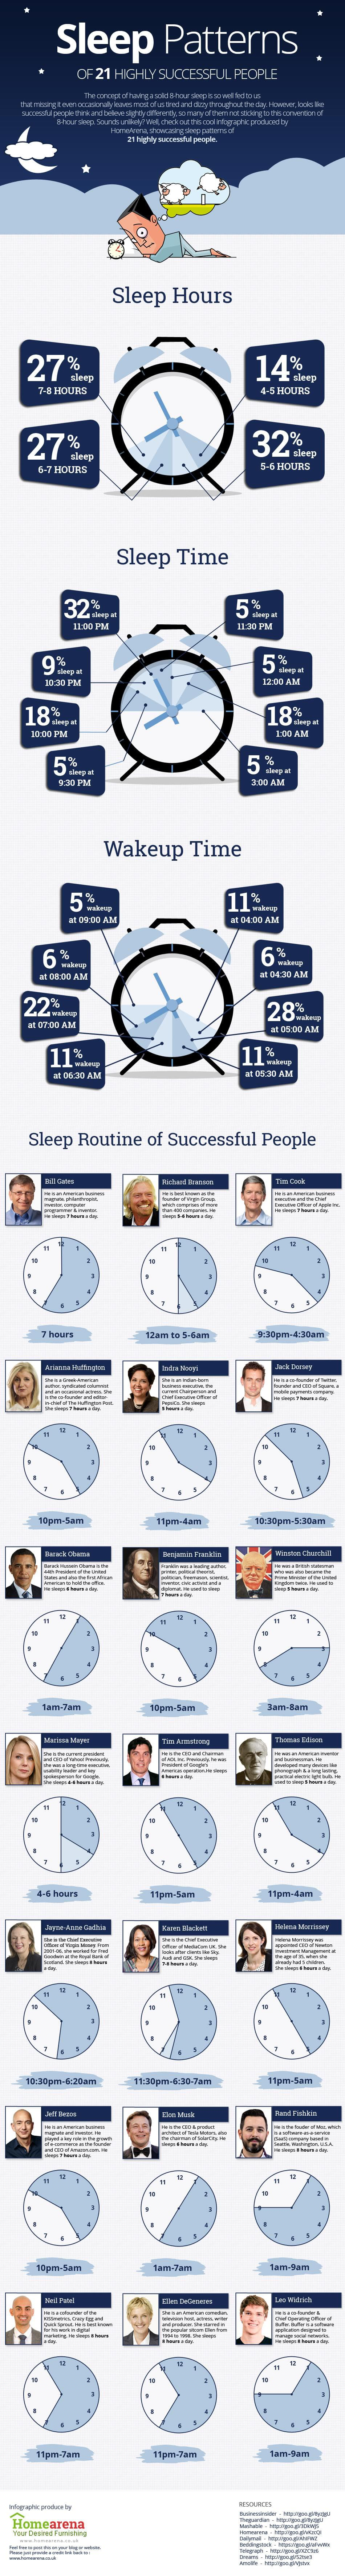 Sleep Habits of Successful People [Infographic]